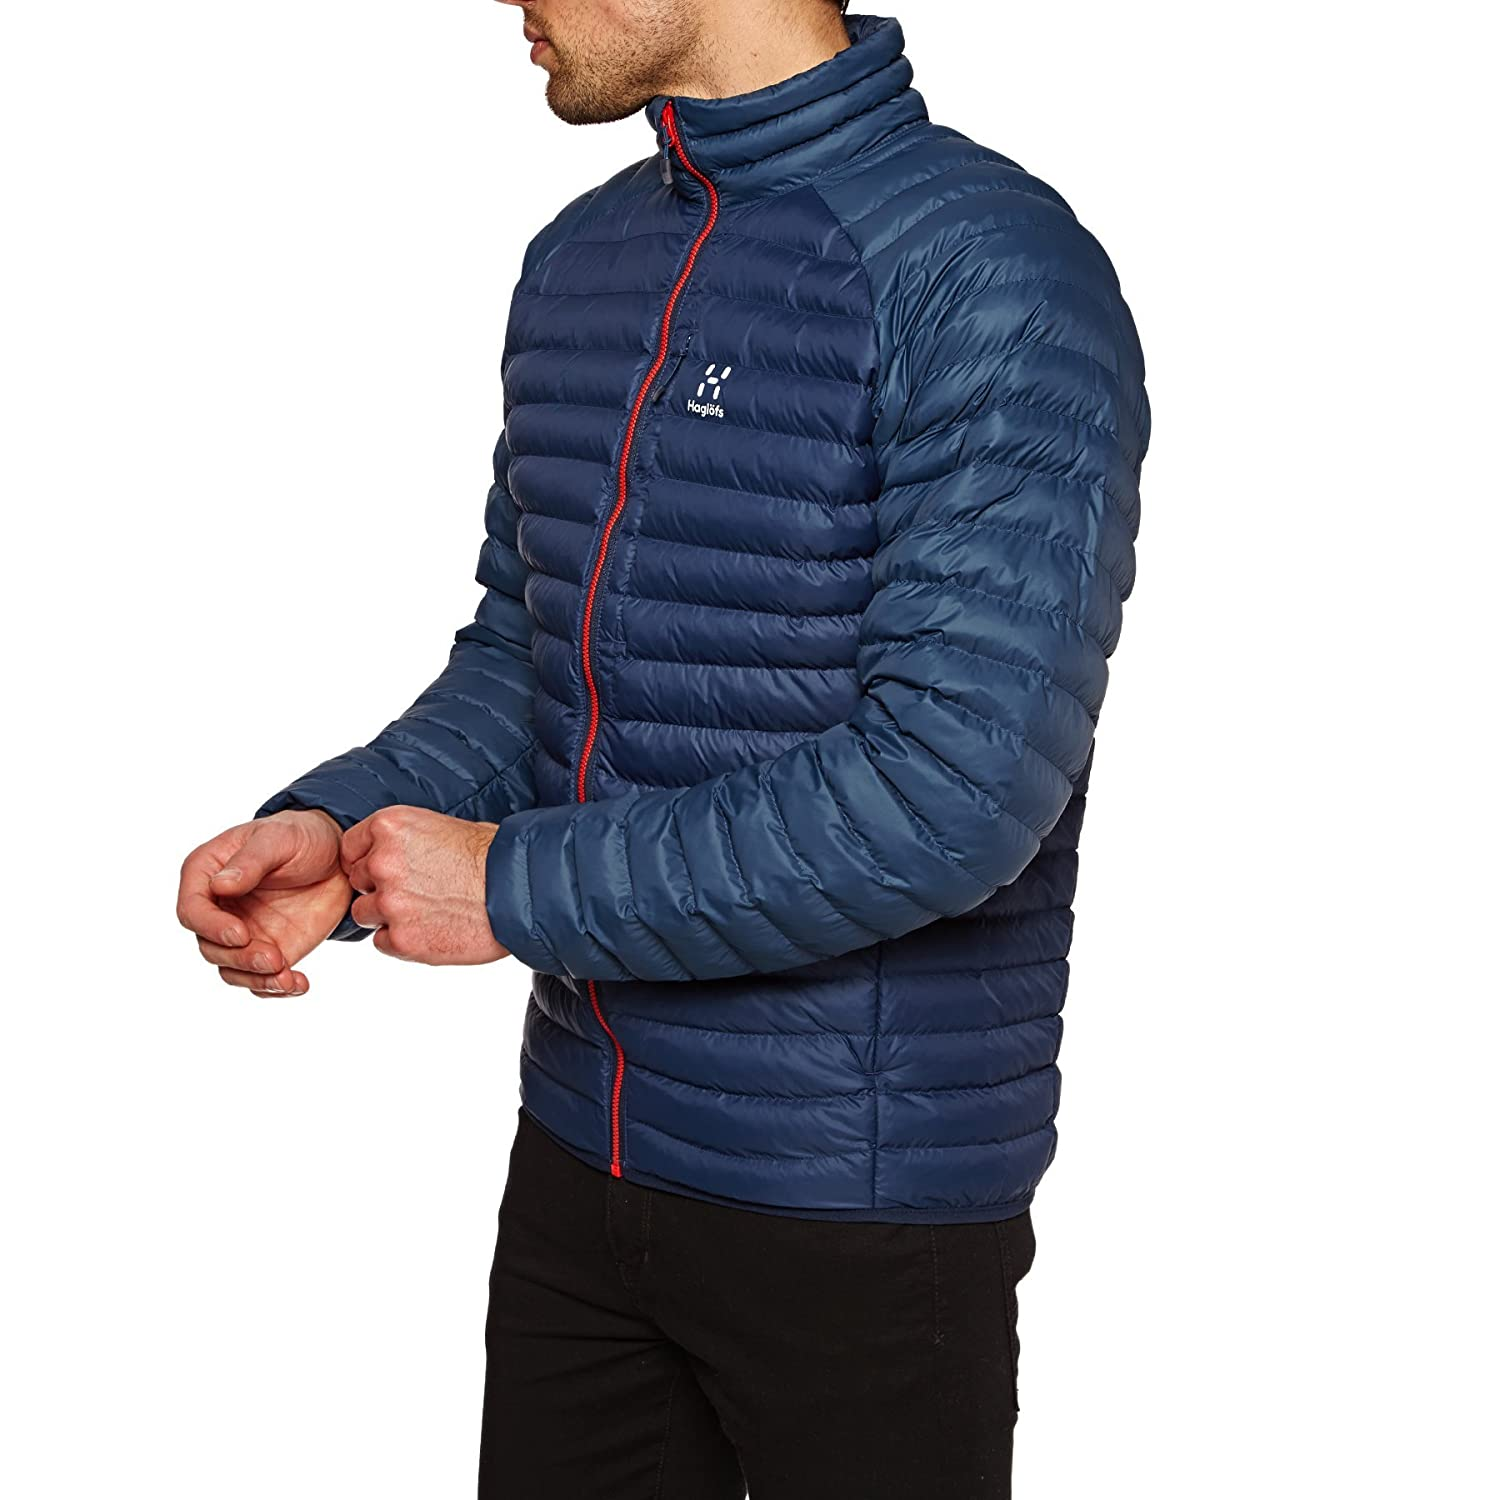 HAGLOFS Blue ホグロフス ESSENS MIMIC Ink 3L JACKET MEN メンズ ダウンジャケット (2CX):603156 ホグロフス B077TQ8DL7 3L|Tarn Blue Blue Ink Tarn Blue Blue Ink 3L, チェルシーコレクション:d604c2a8 --- jpworks.be